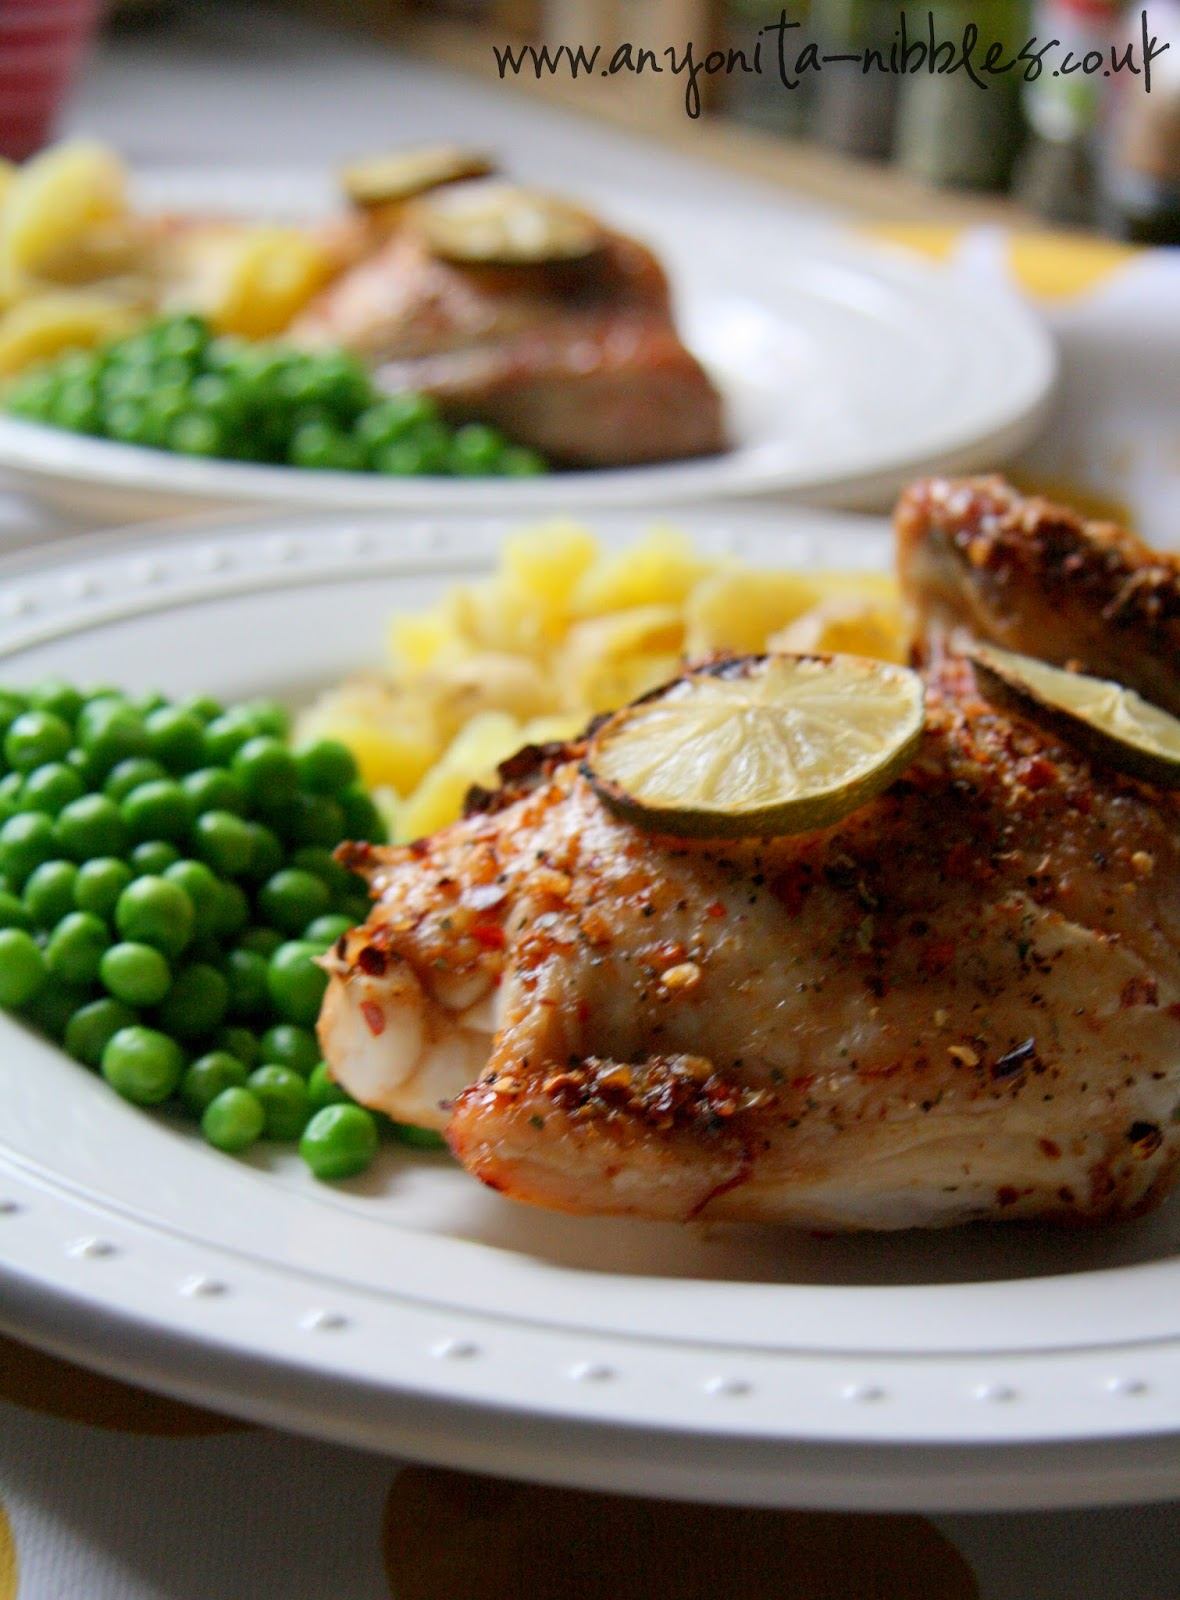 Two plates of peri-peri chicken dinner from www.anyonita-nibbles.co.uk